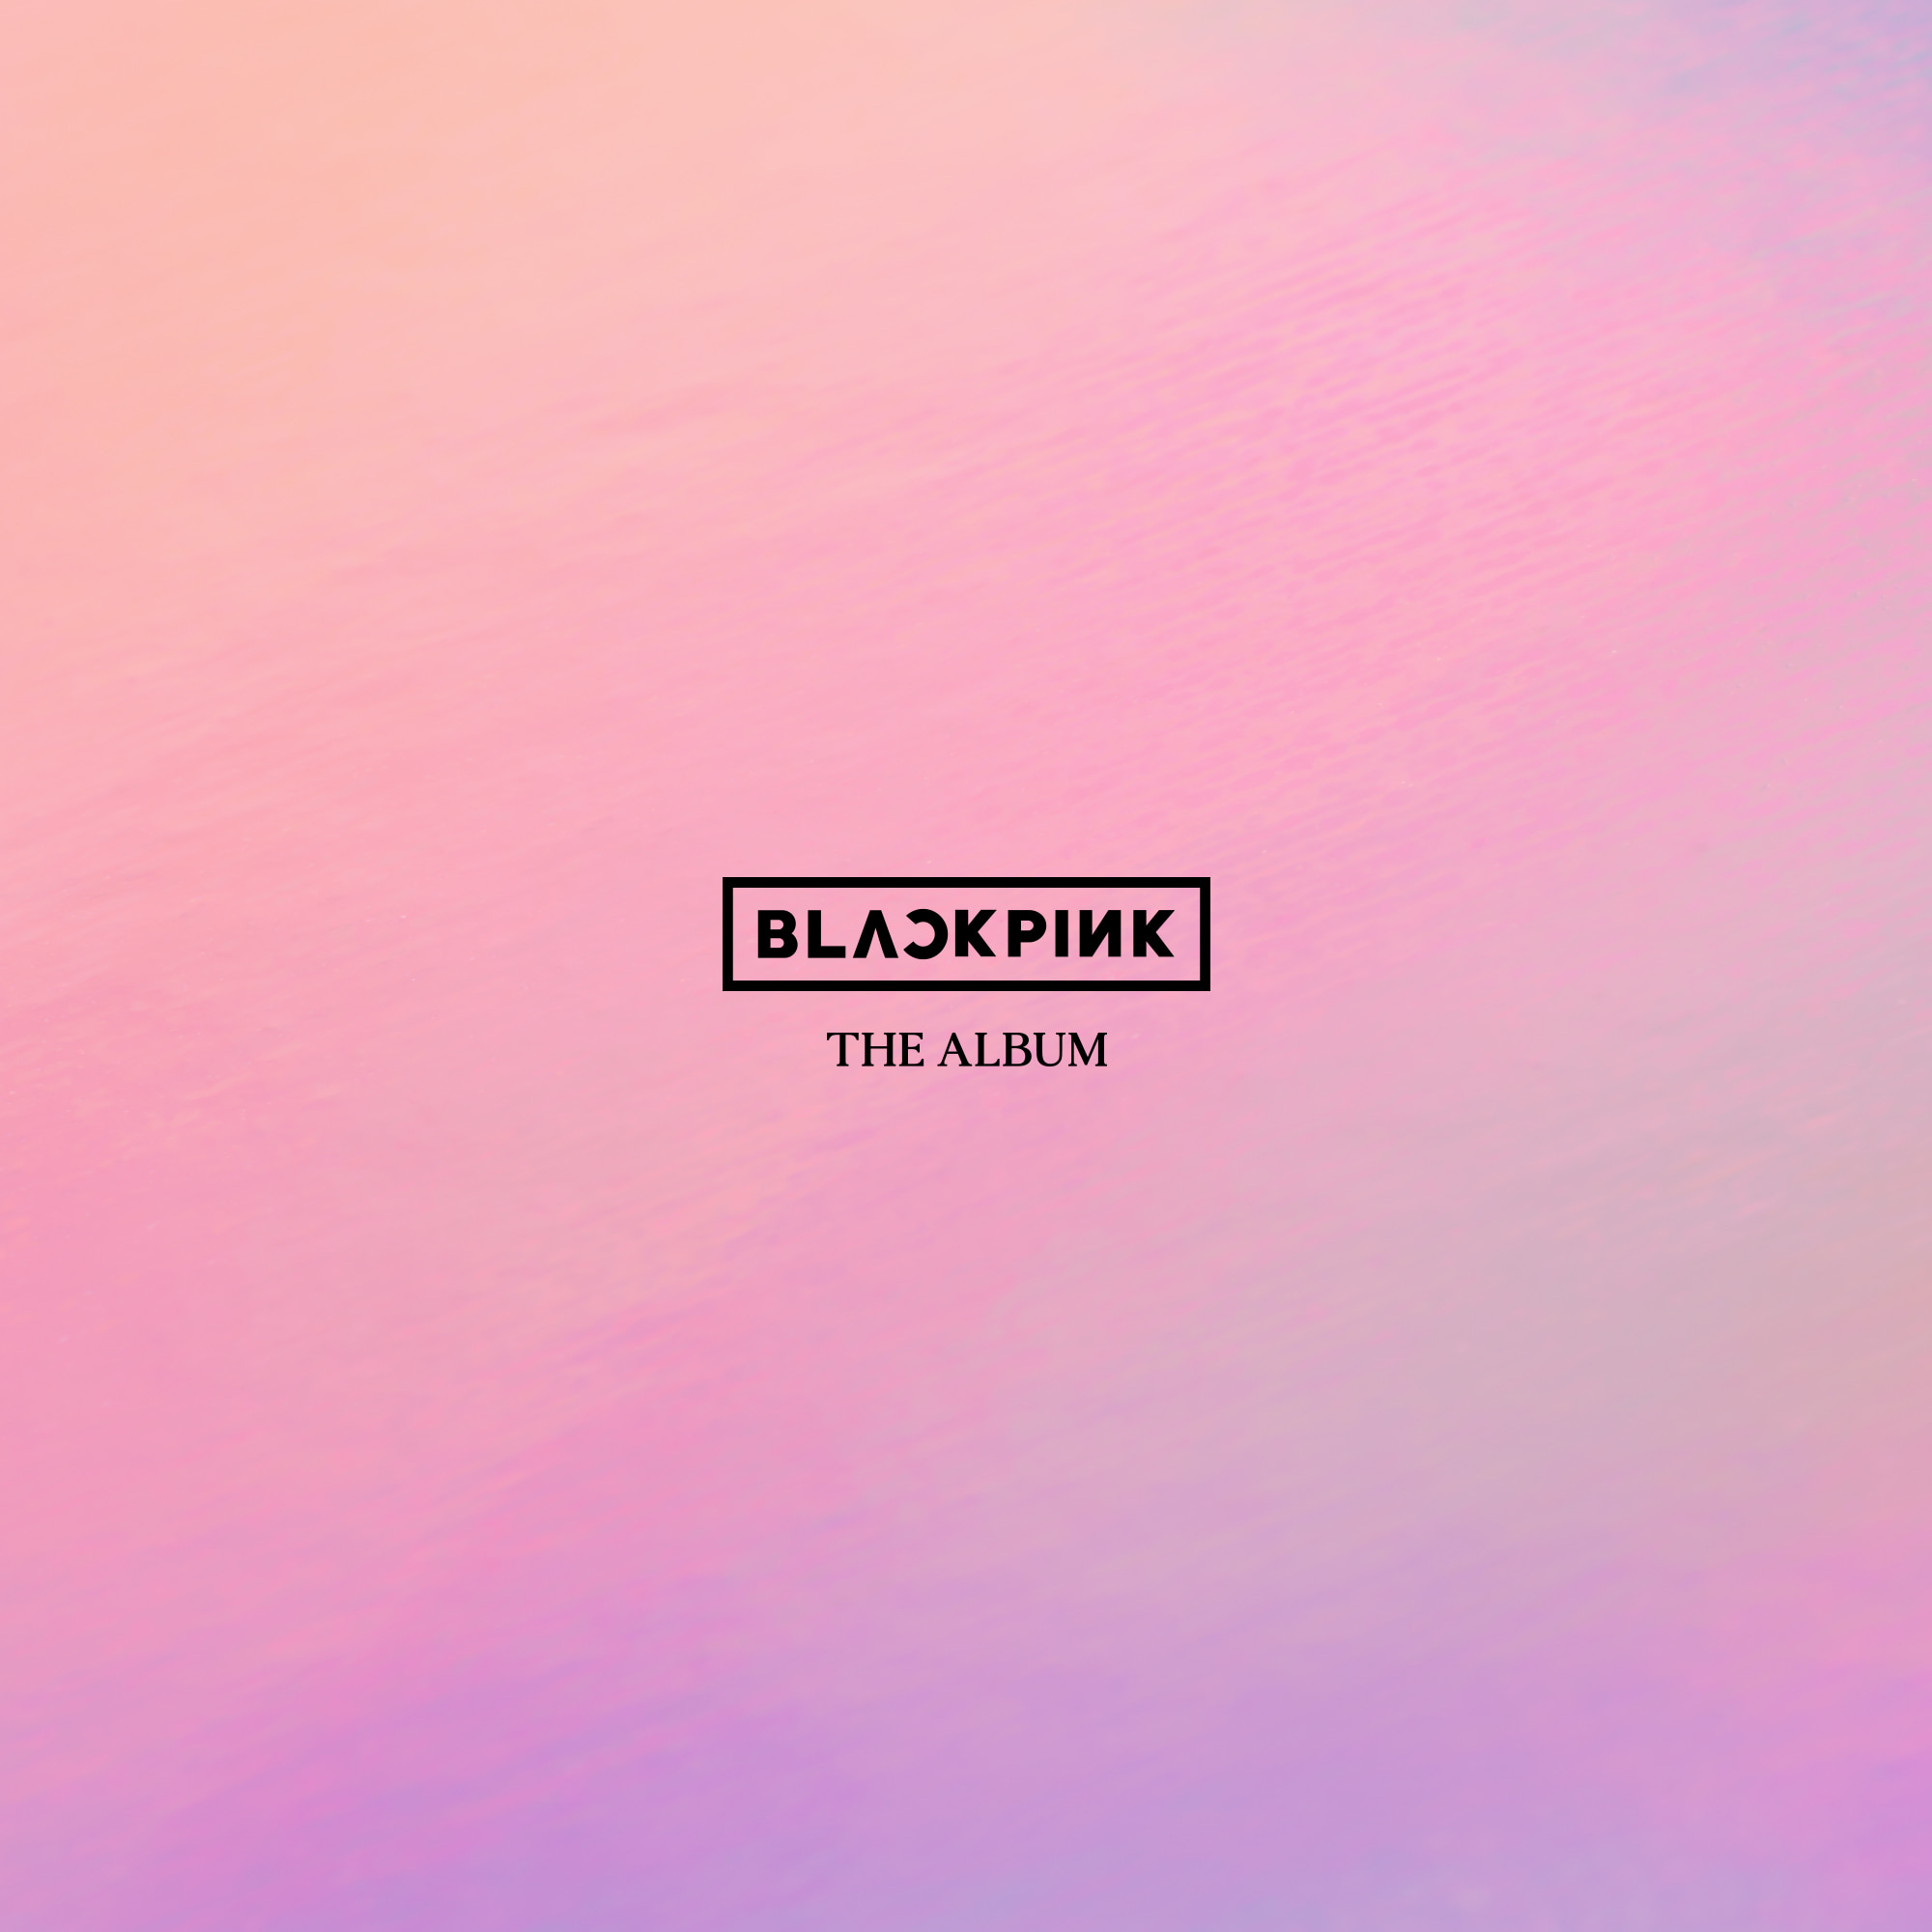 블랙핑크 (BLACKPINK) - 1st FULL ALBUM [THE ALBUM] [Ver.4]